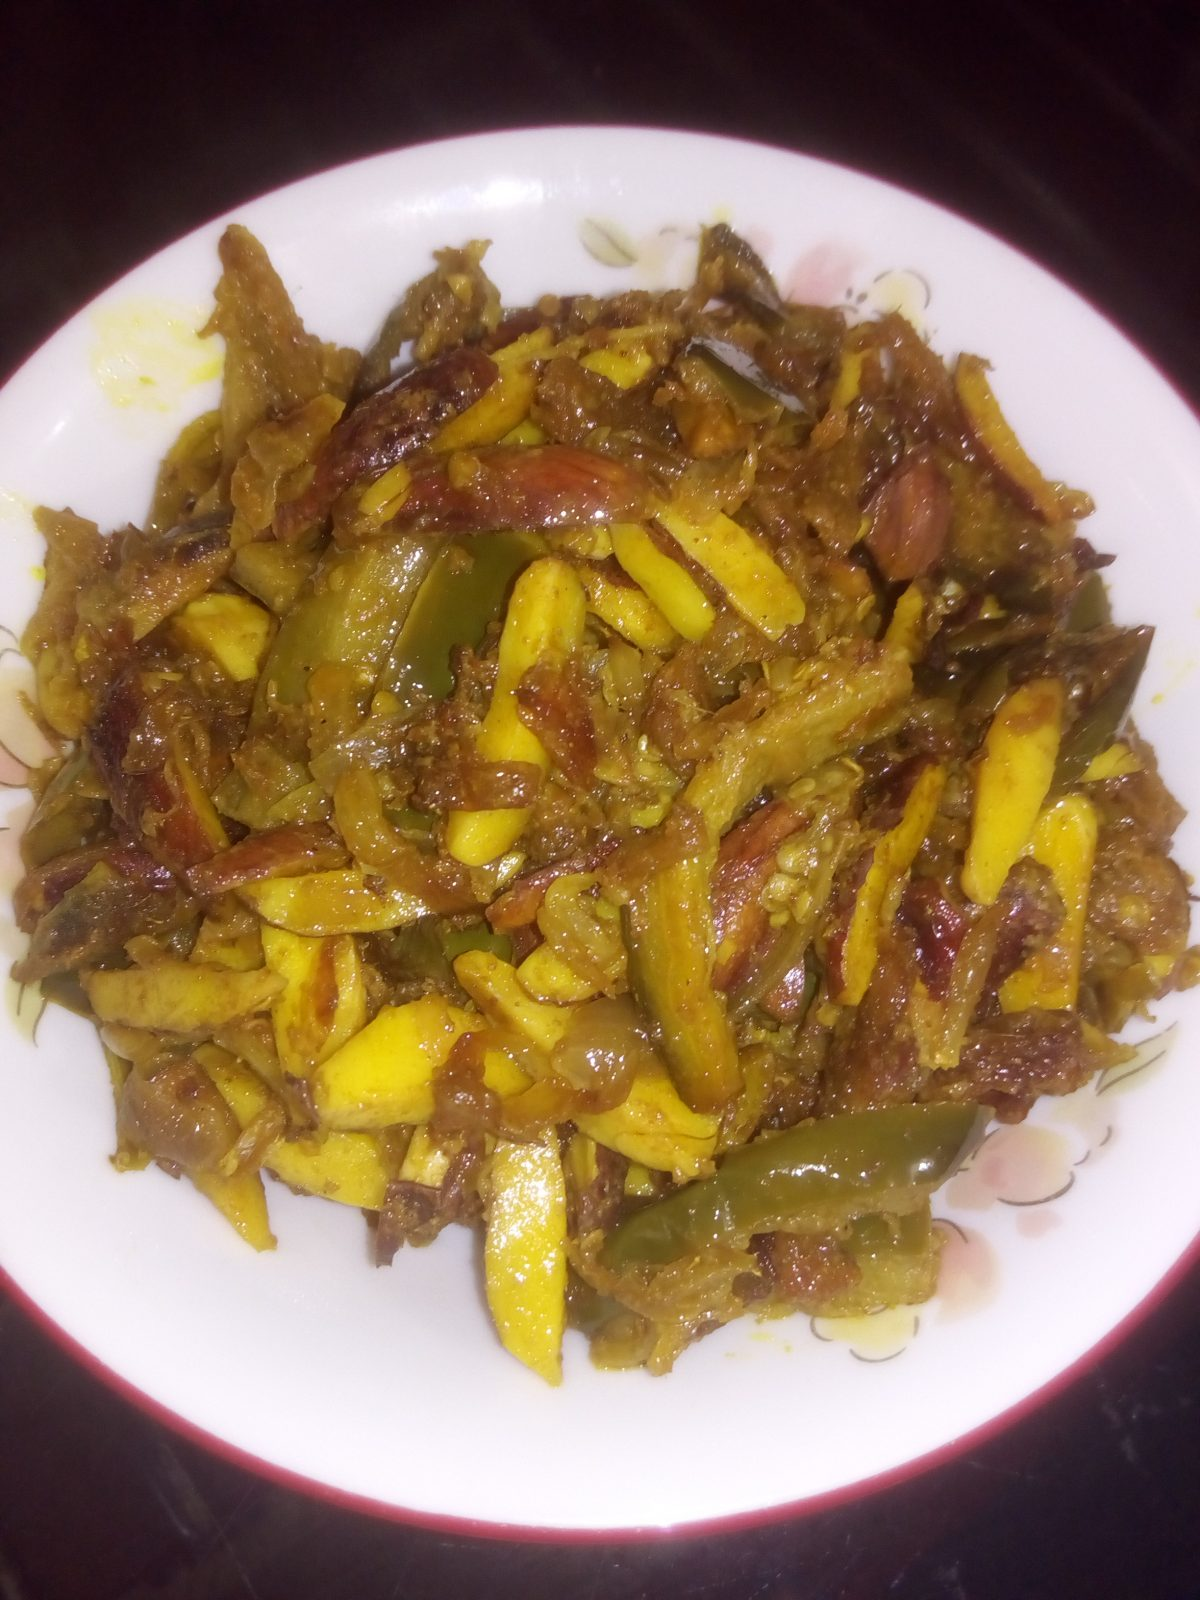 Loitta Shutki, Begun, Jackfruit Seed Fry from Ayesha's Kitchen